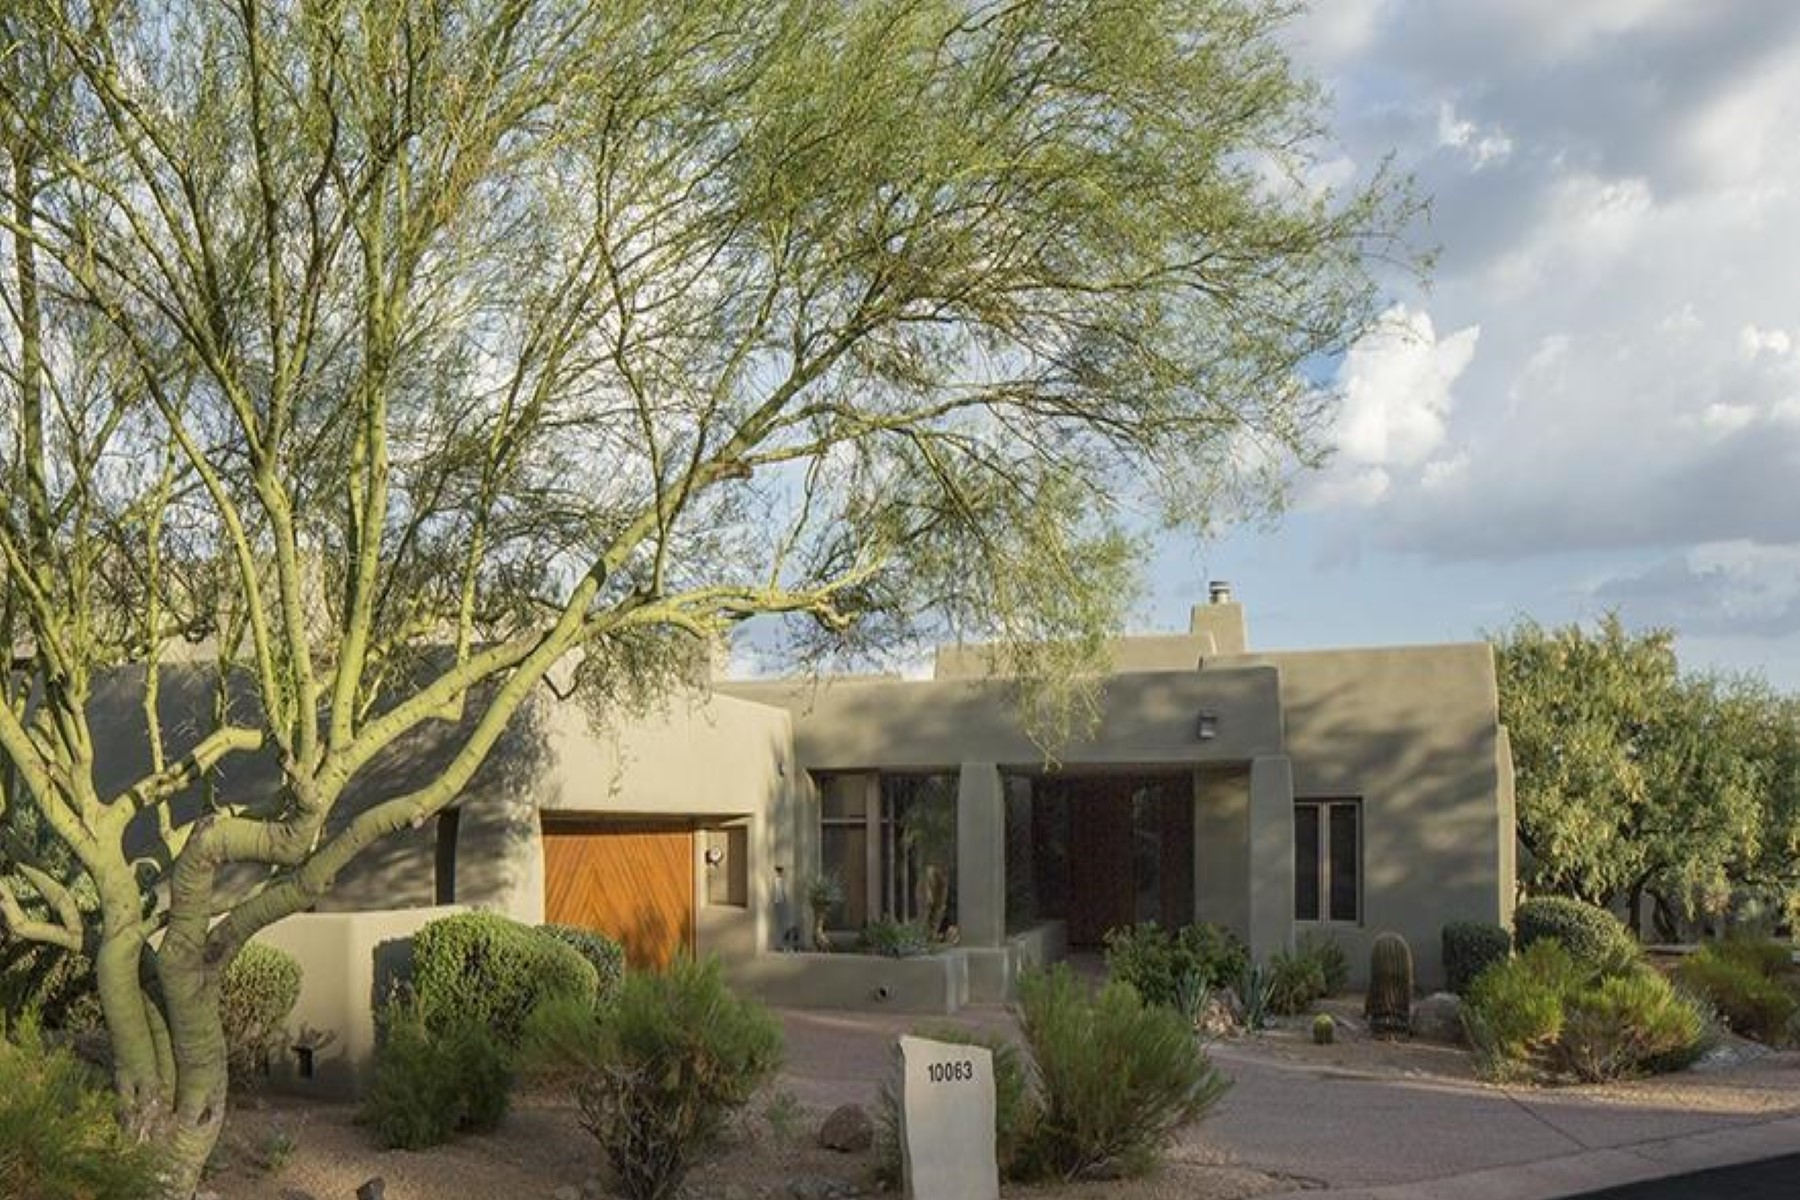 Condominium for Sale at Two master suite Sonoran Cottage with patio 10063 E Graythorn Dr Scottsdale, Arizona, 85262 United States